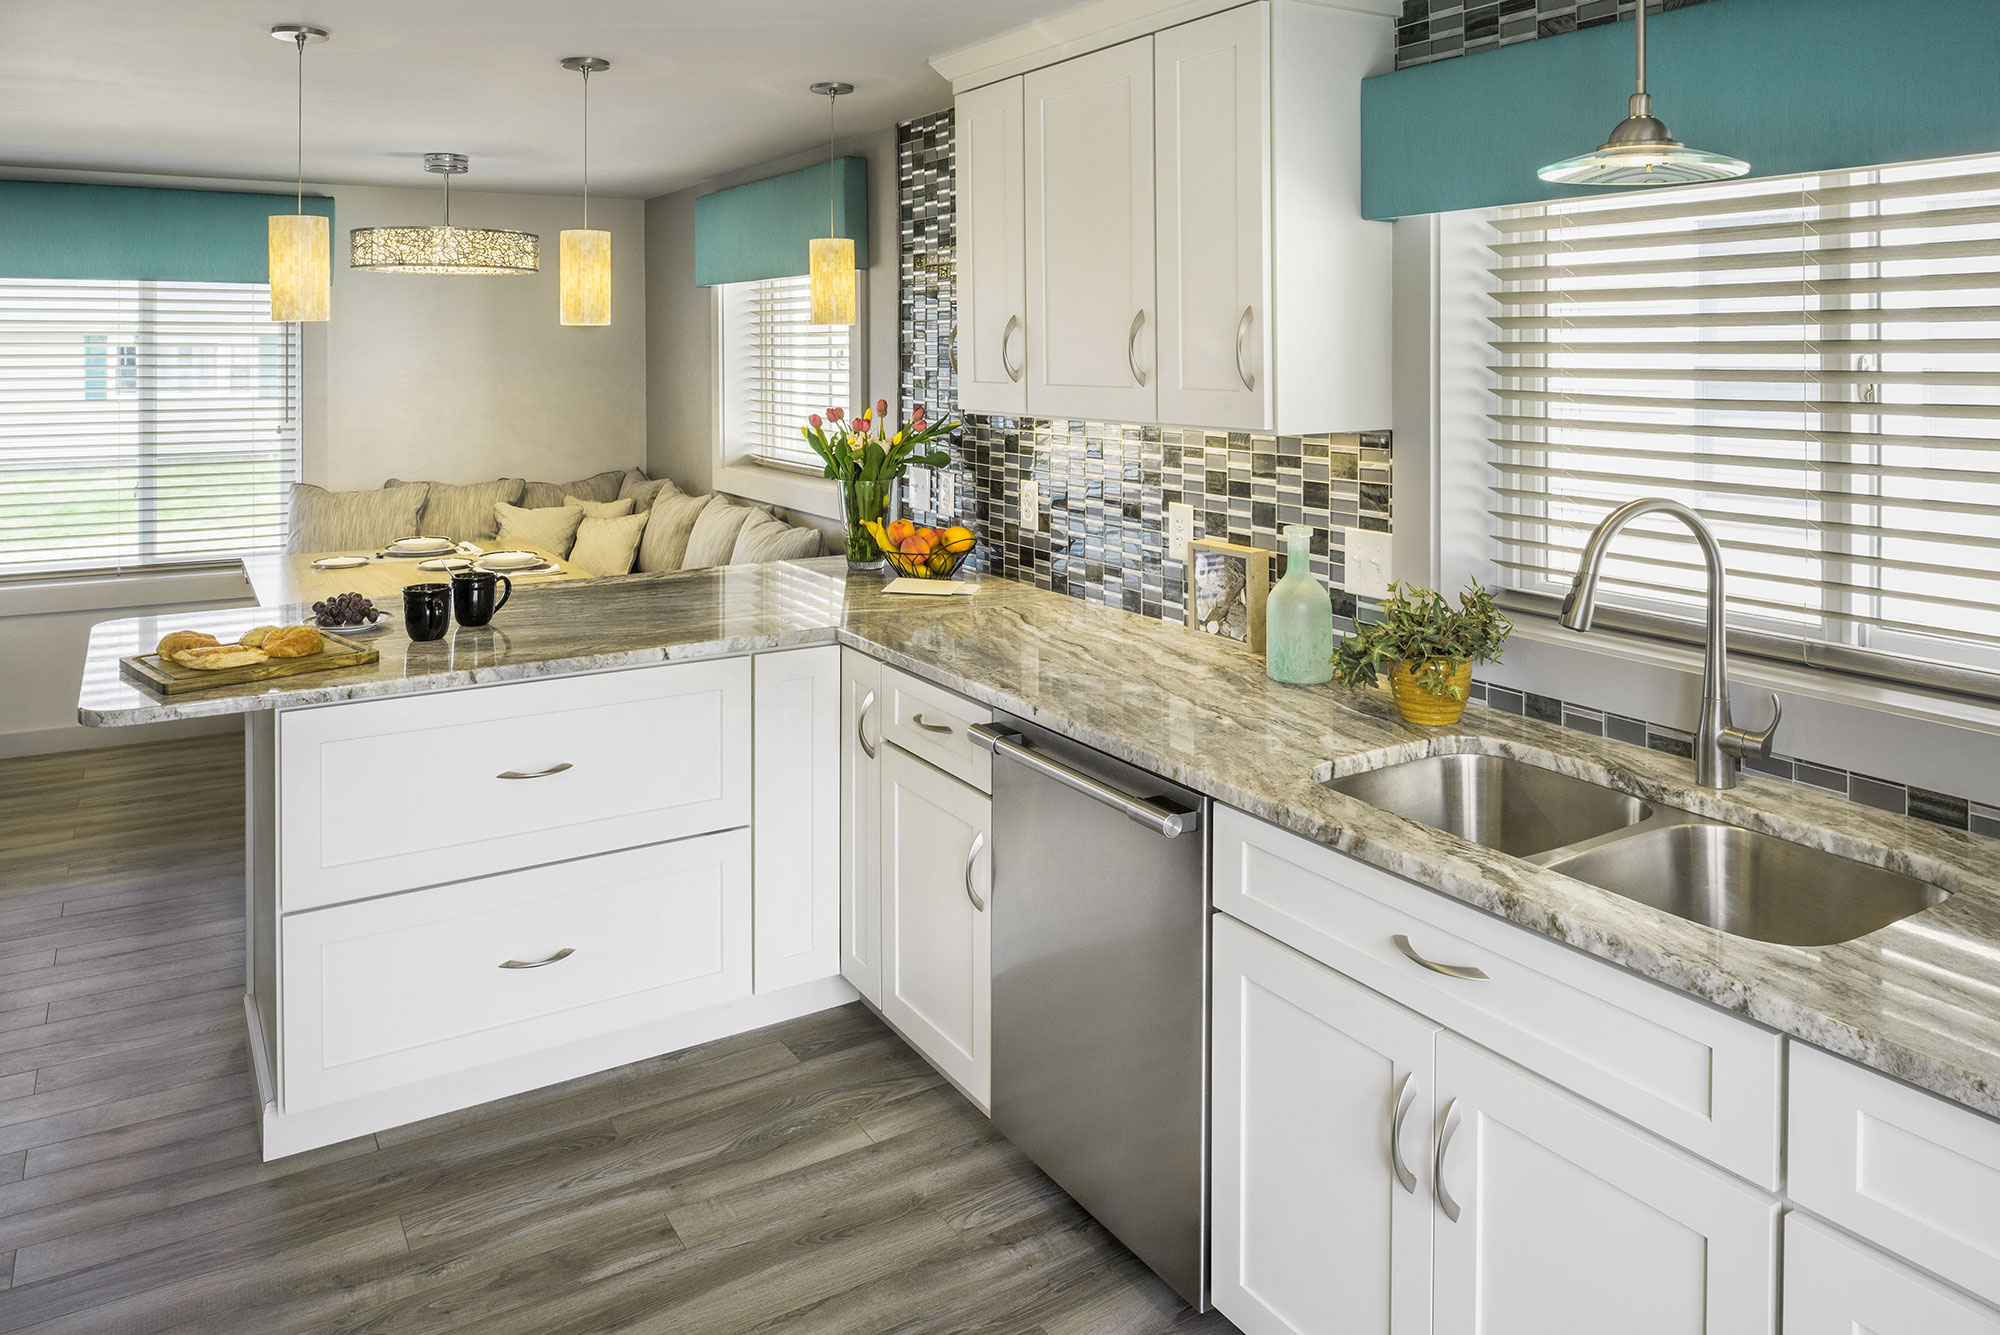 Kitchen remodeling from concept to completion in RI by Home Builder